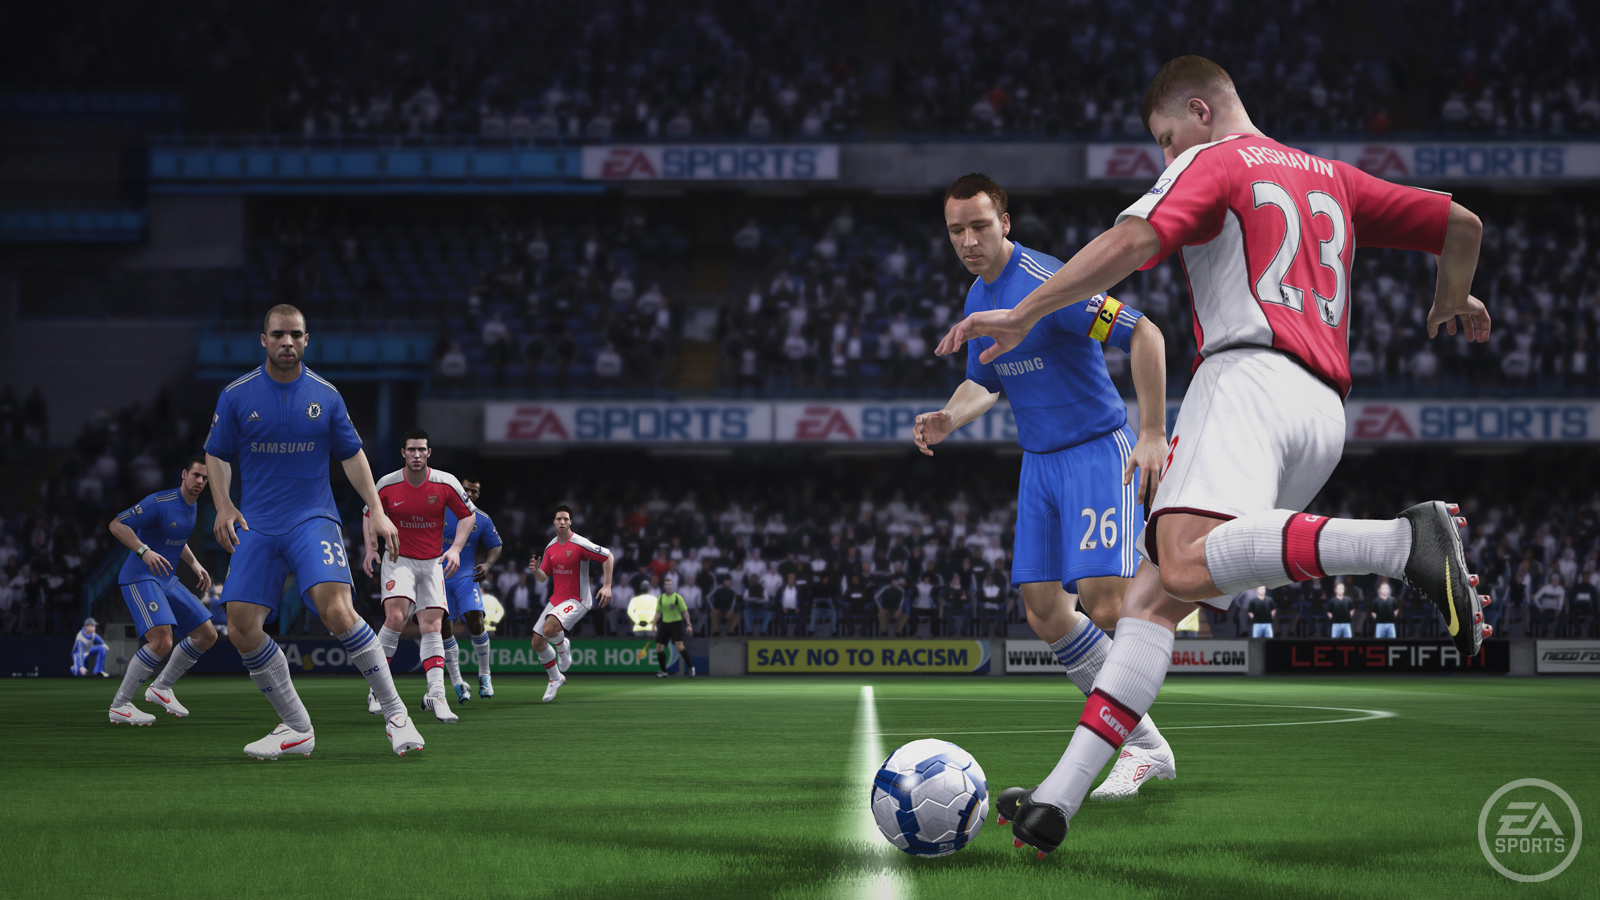 Fifa 2011 pc highly compressed download.